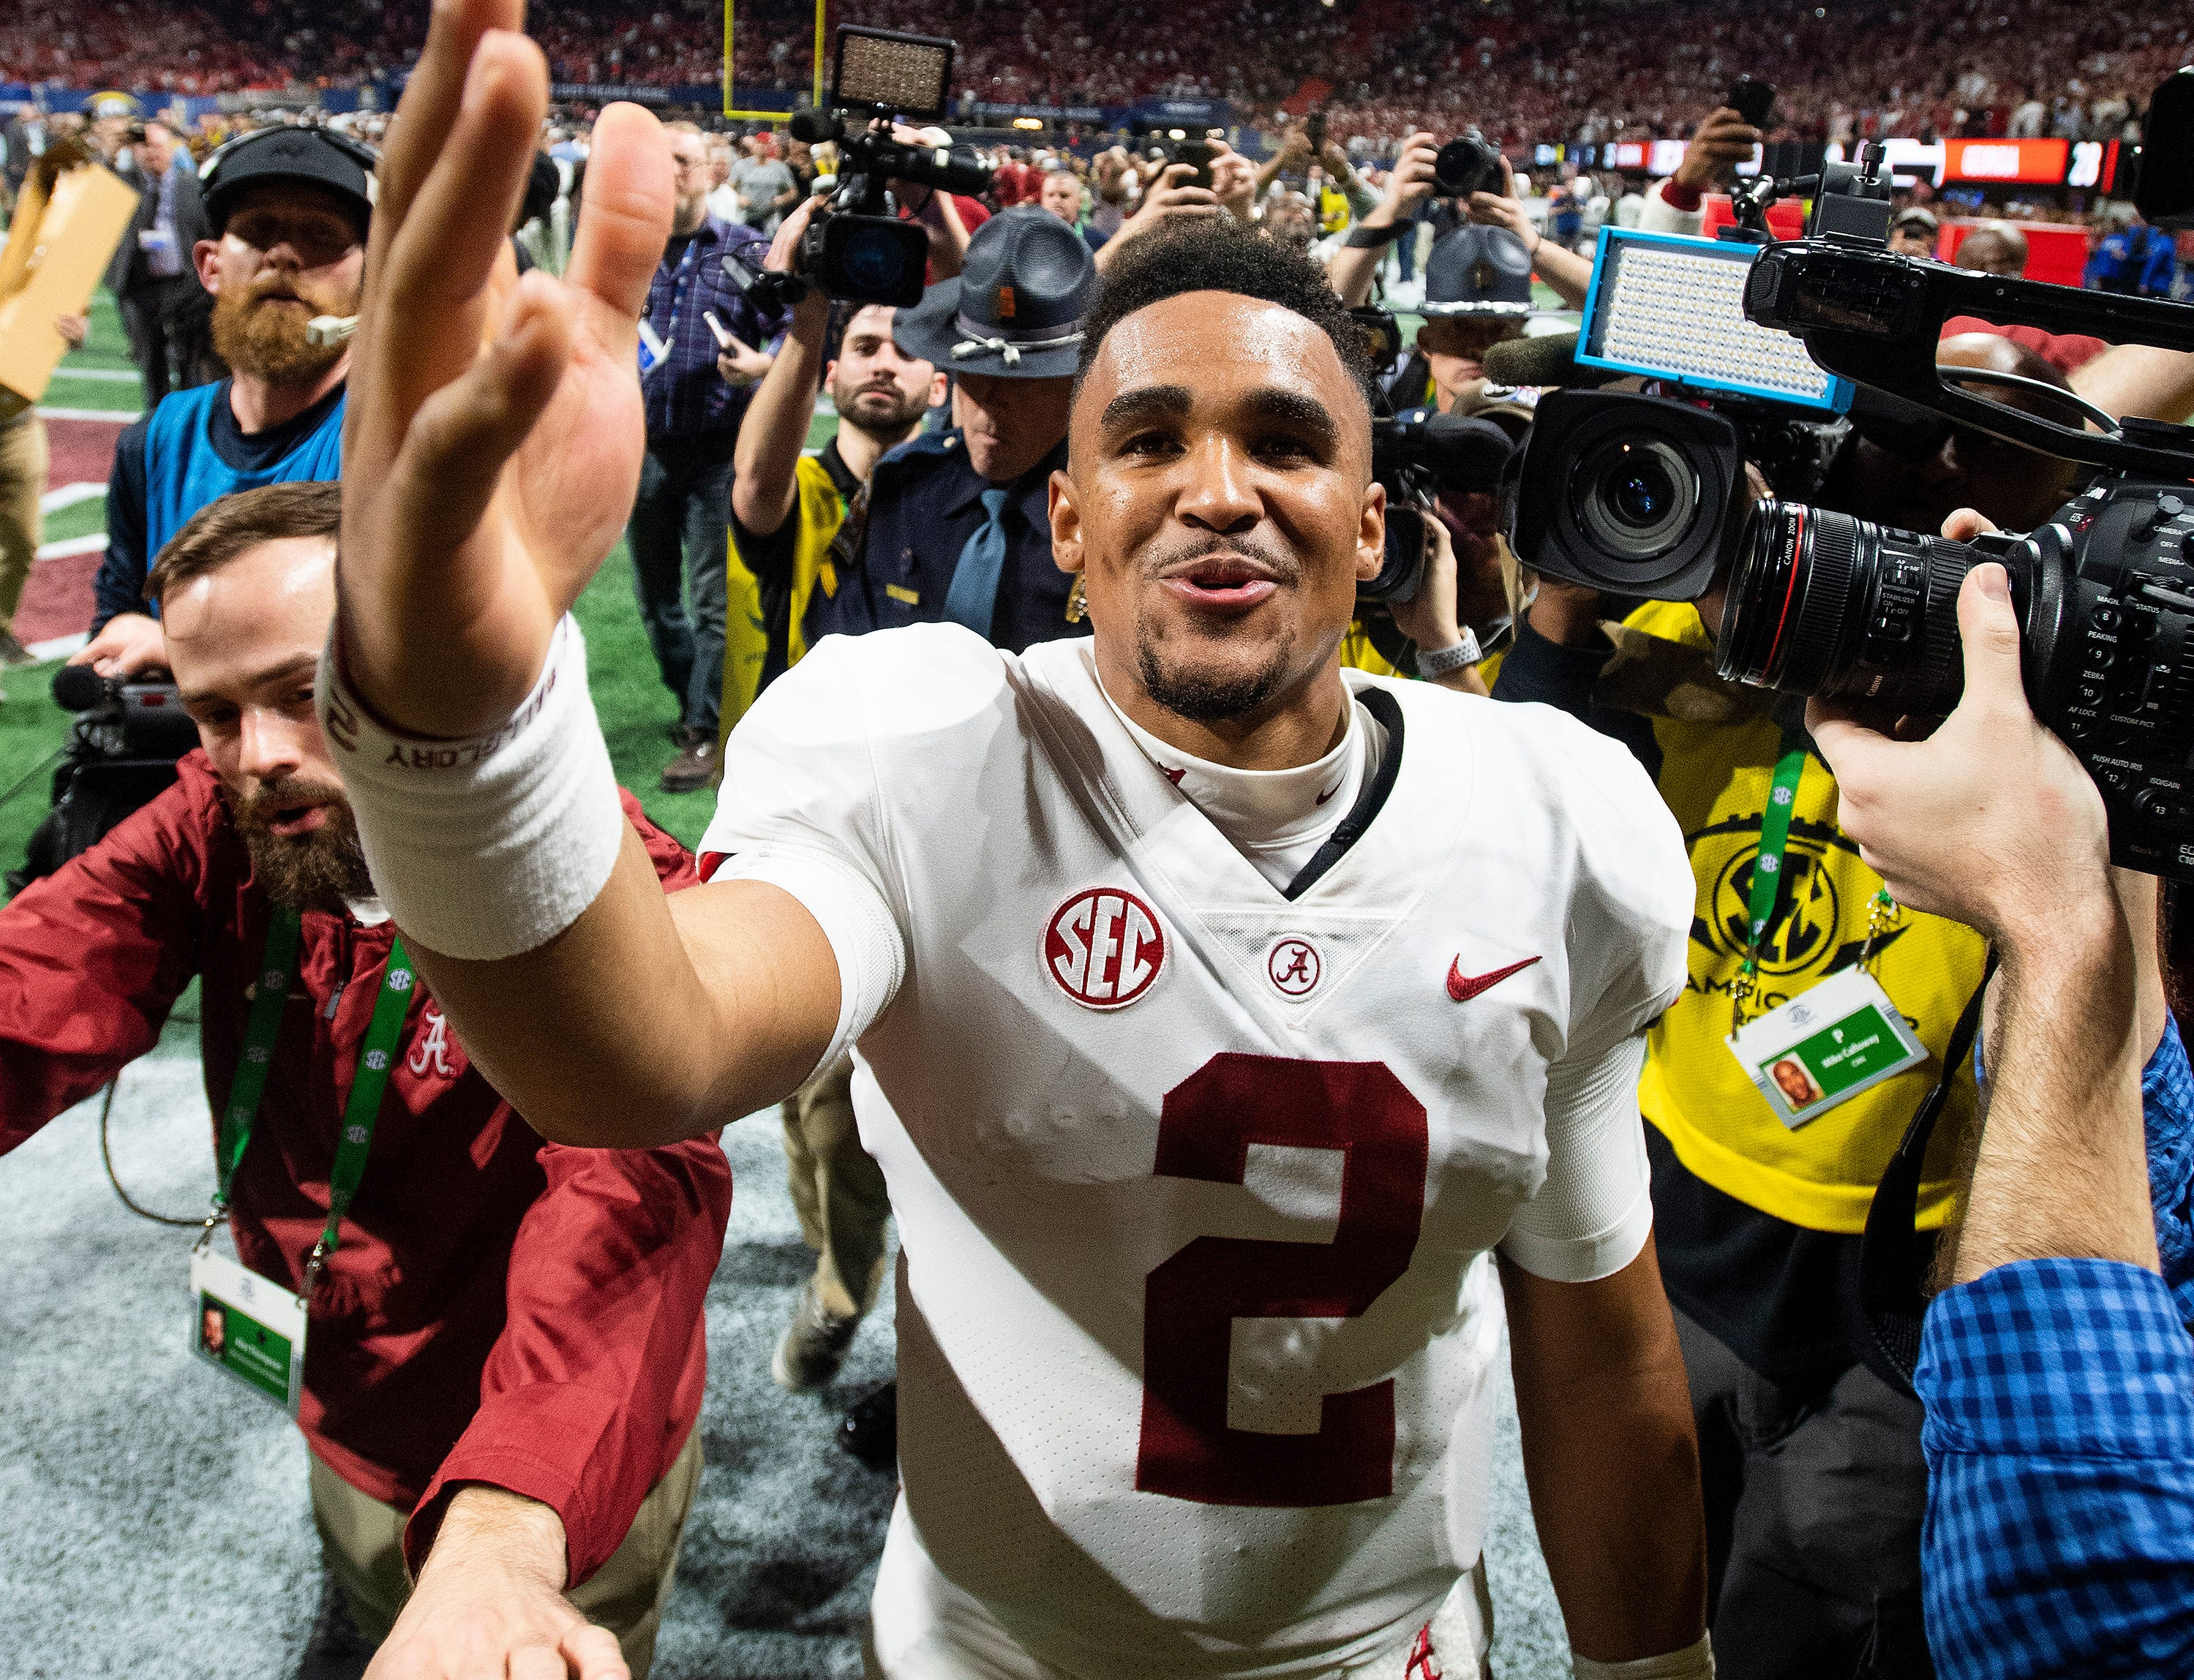 Alabama quarterback Jalen Hurts (2) throws a kiss to family after defeating Georgia in the SEC Championship Game at Mercedes Benz Stadium in Atlanta, Ga., on Saturday December 1, 2018.